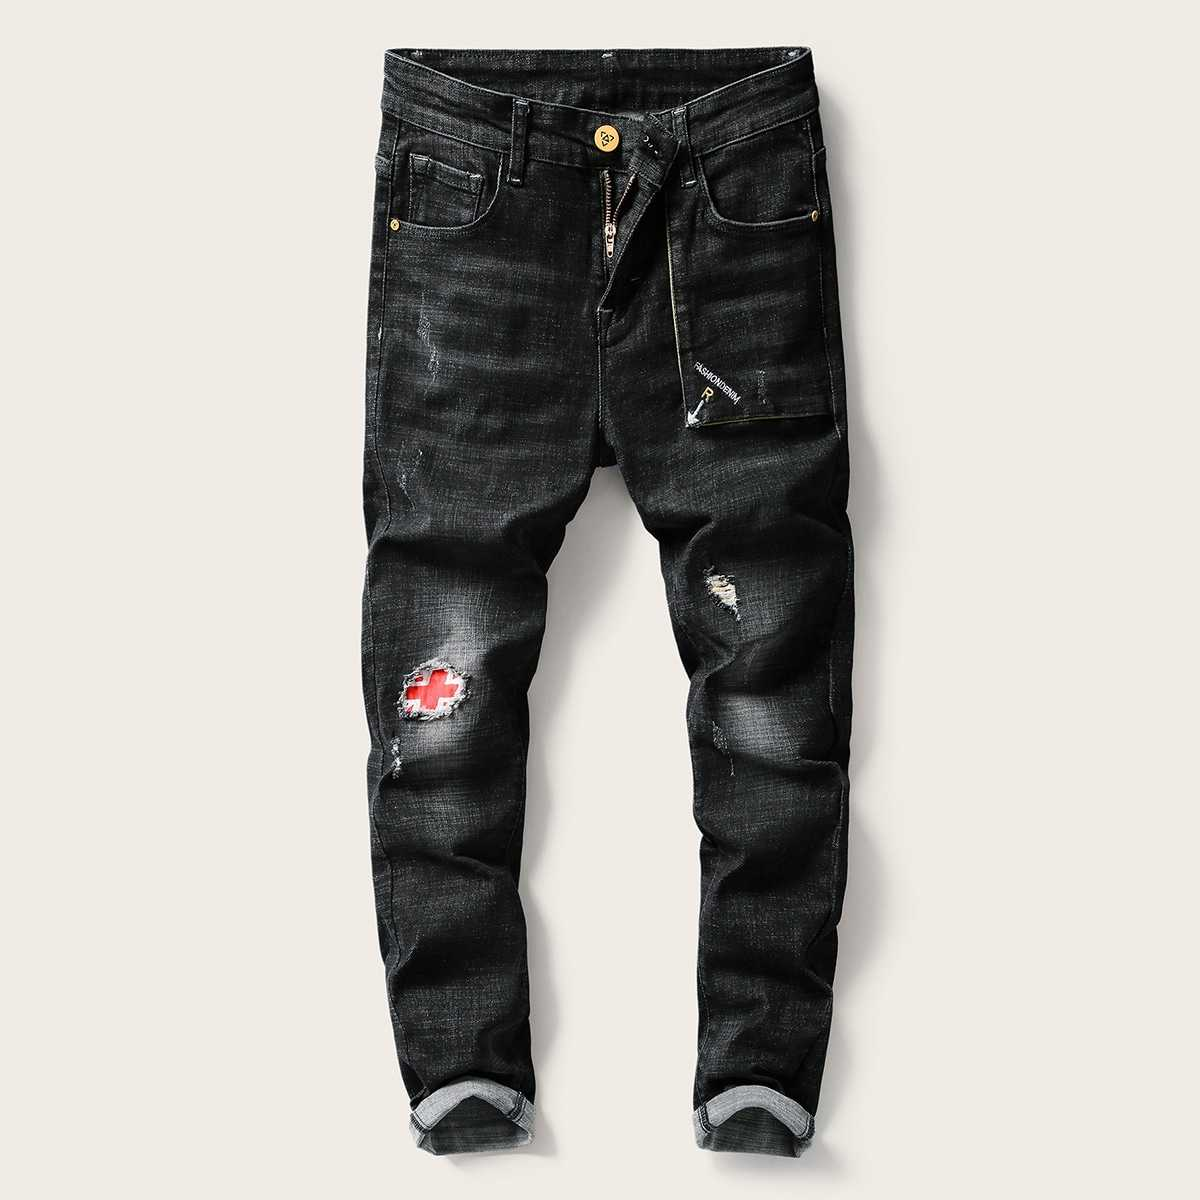 Guys Patched Cats Whiskers Ripped Jeans in Black by ROMWE on GOOFASH